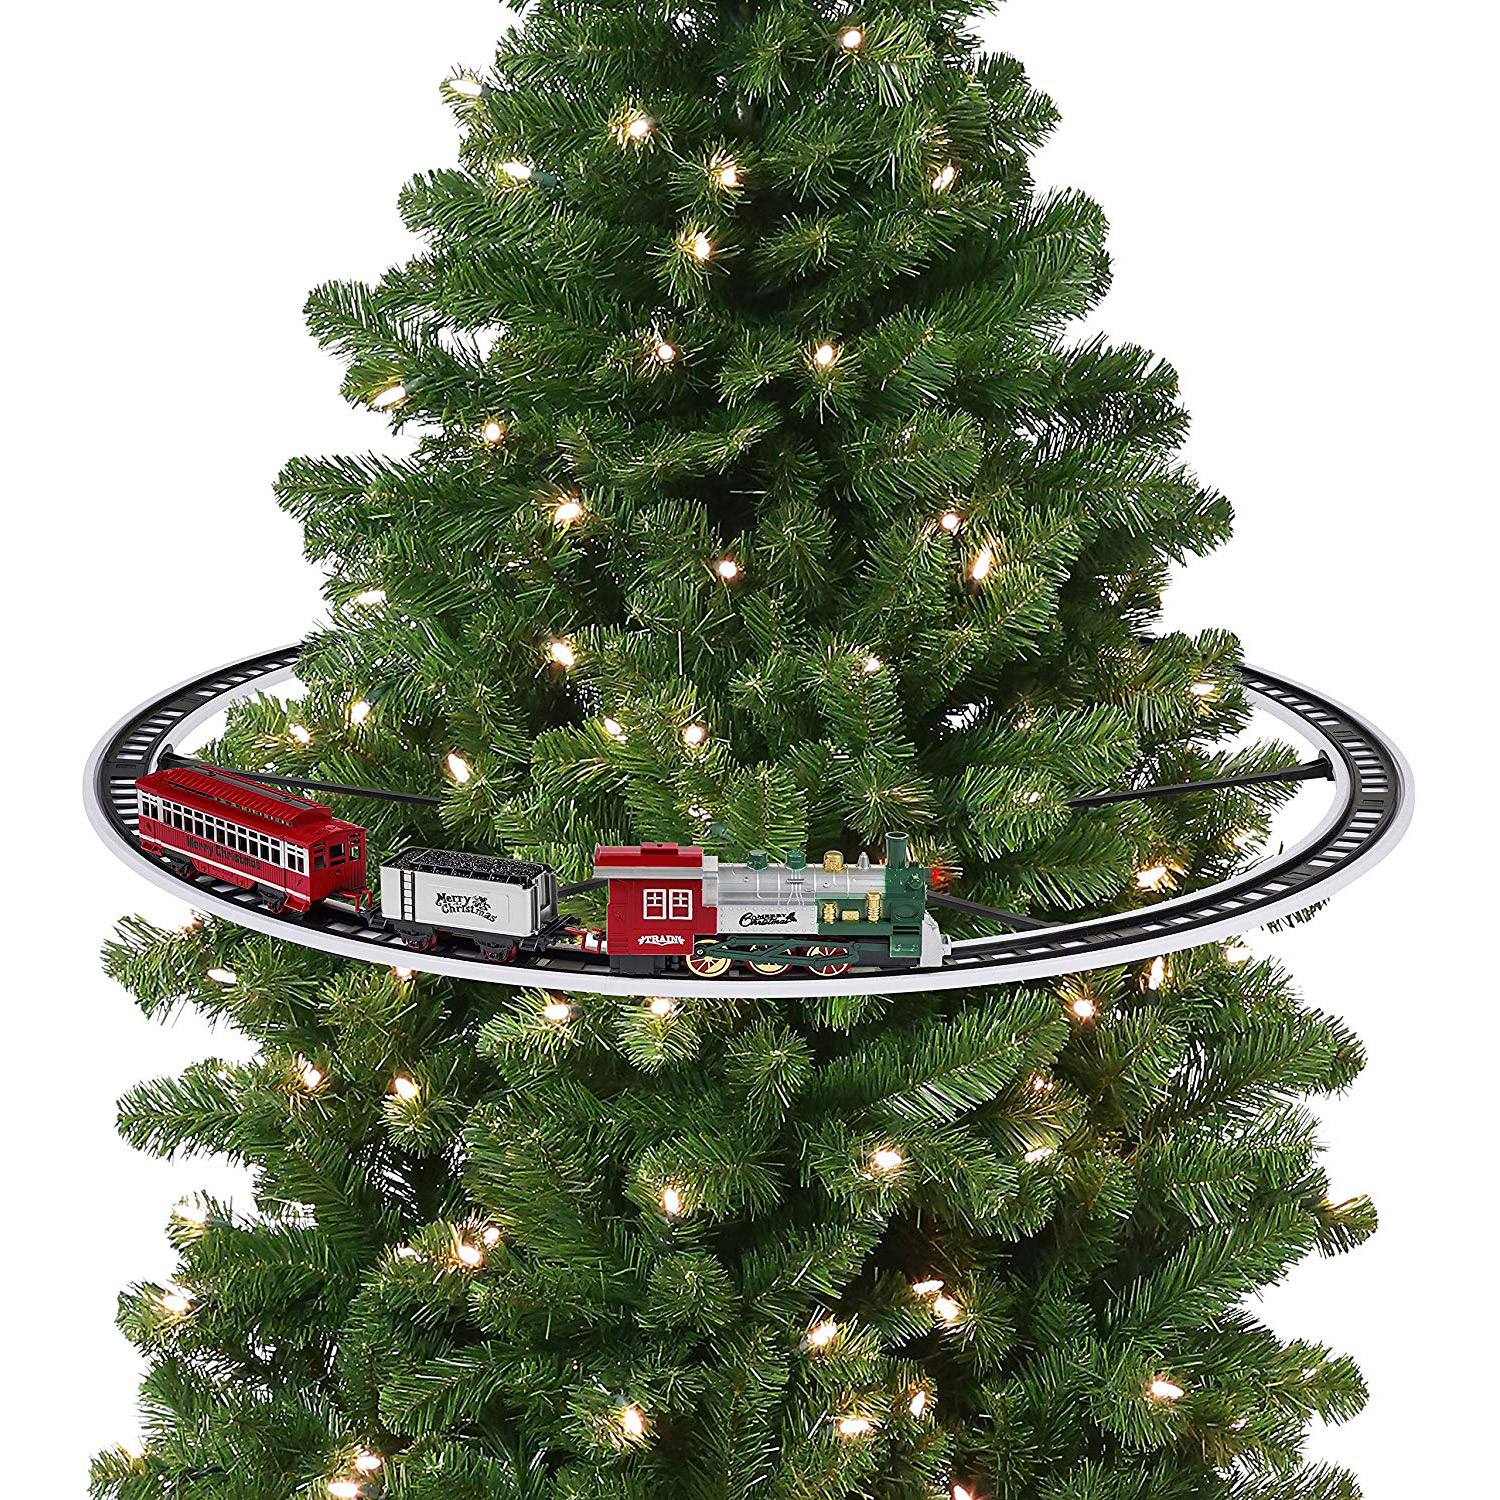 Mr. Christmas Elevated Christmas Tree Train